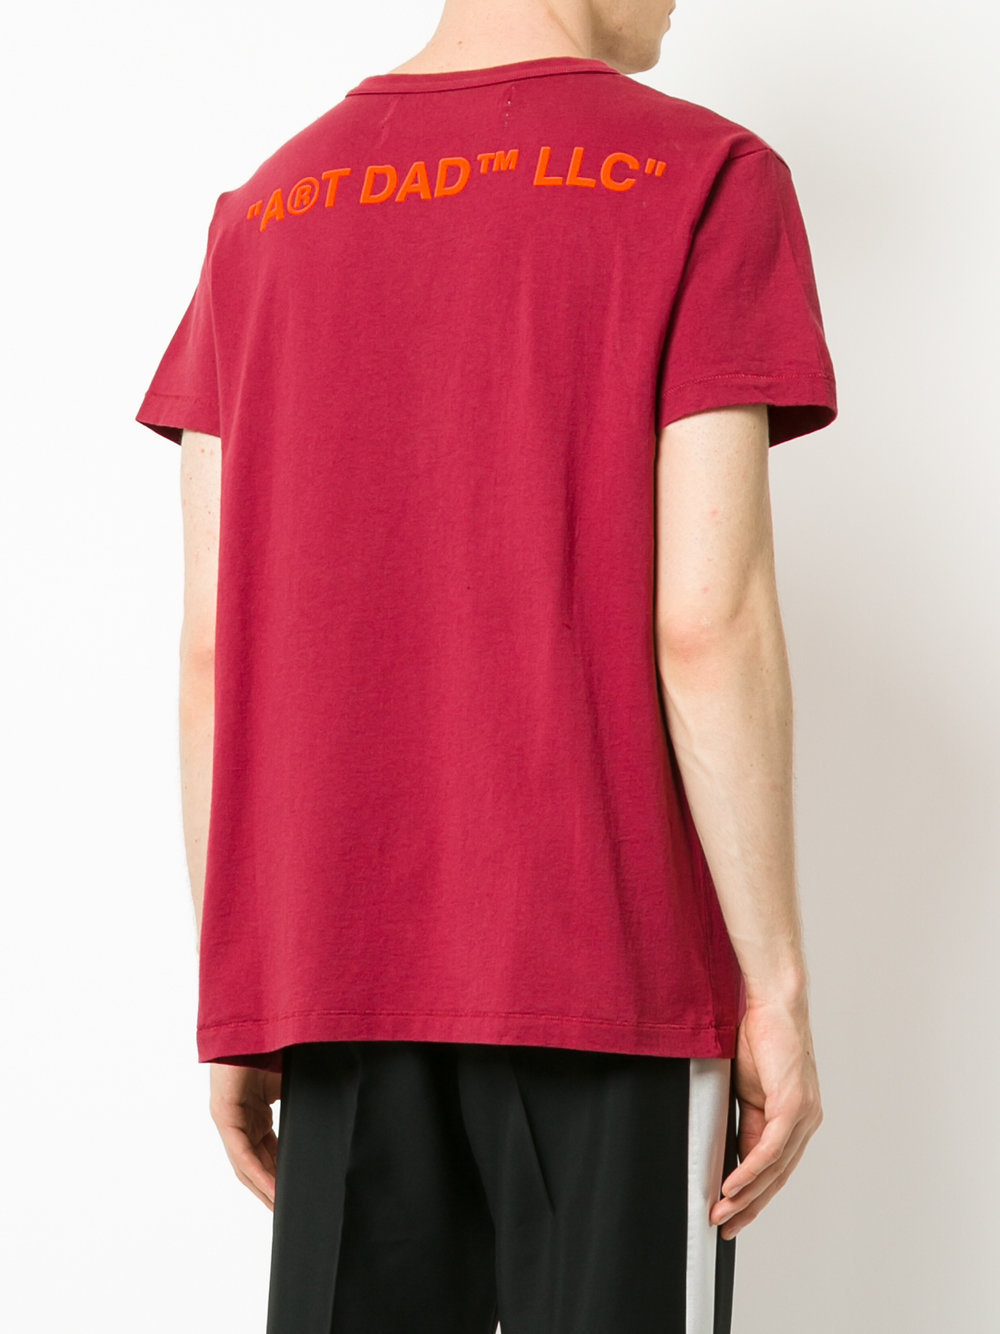 Off-White  Late Nights Early Mornings Tシャツ